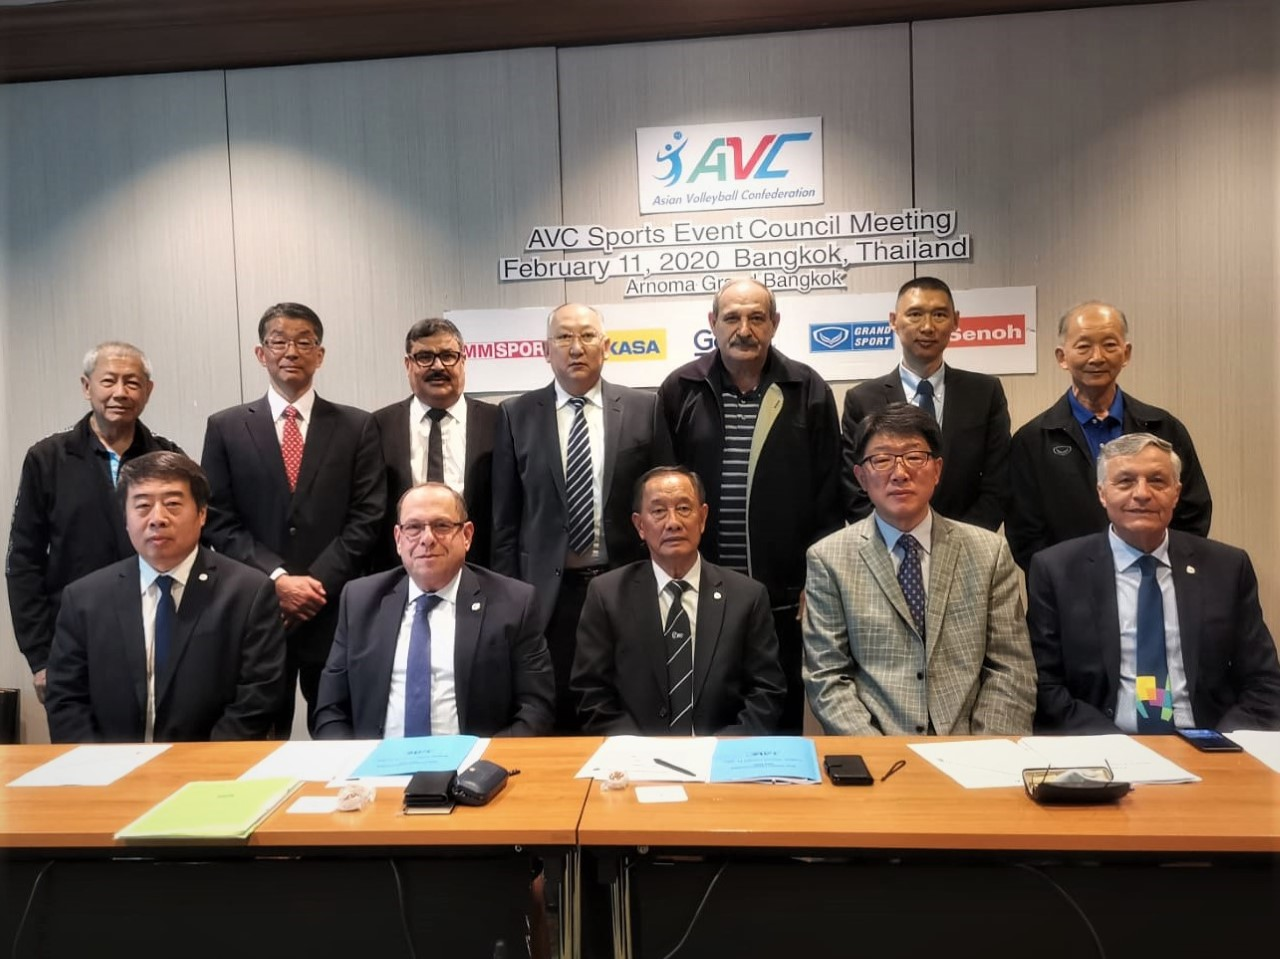 AVC SPORTS EVENTS COUNCIL REVIEWS TASKS COMPLETED AND DISCUSSES FUTURE CHALLENGES